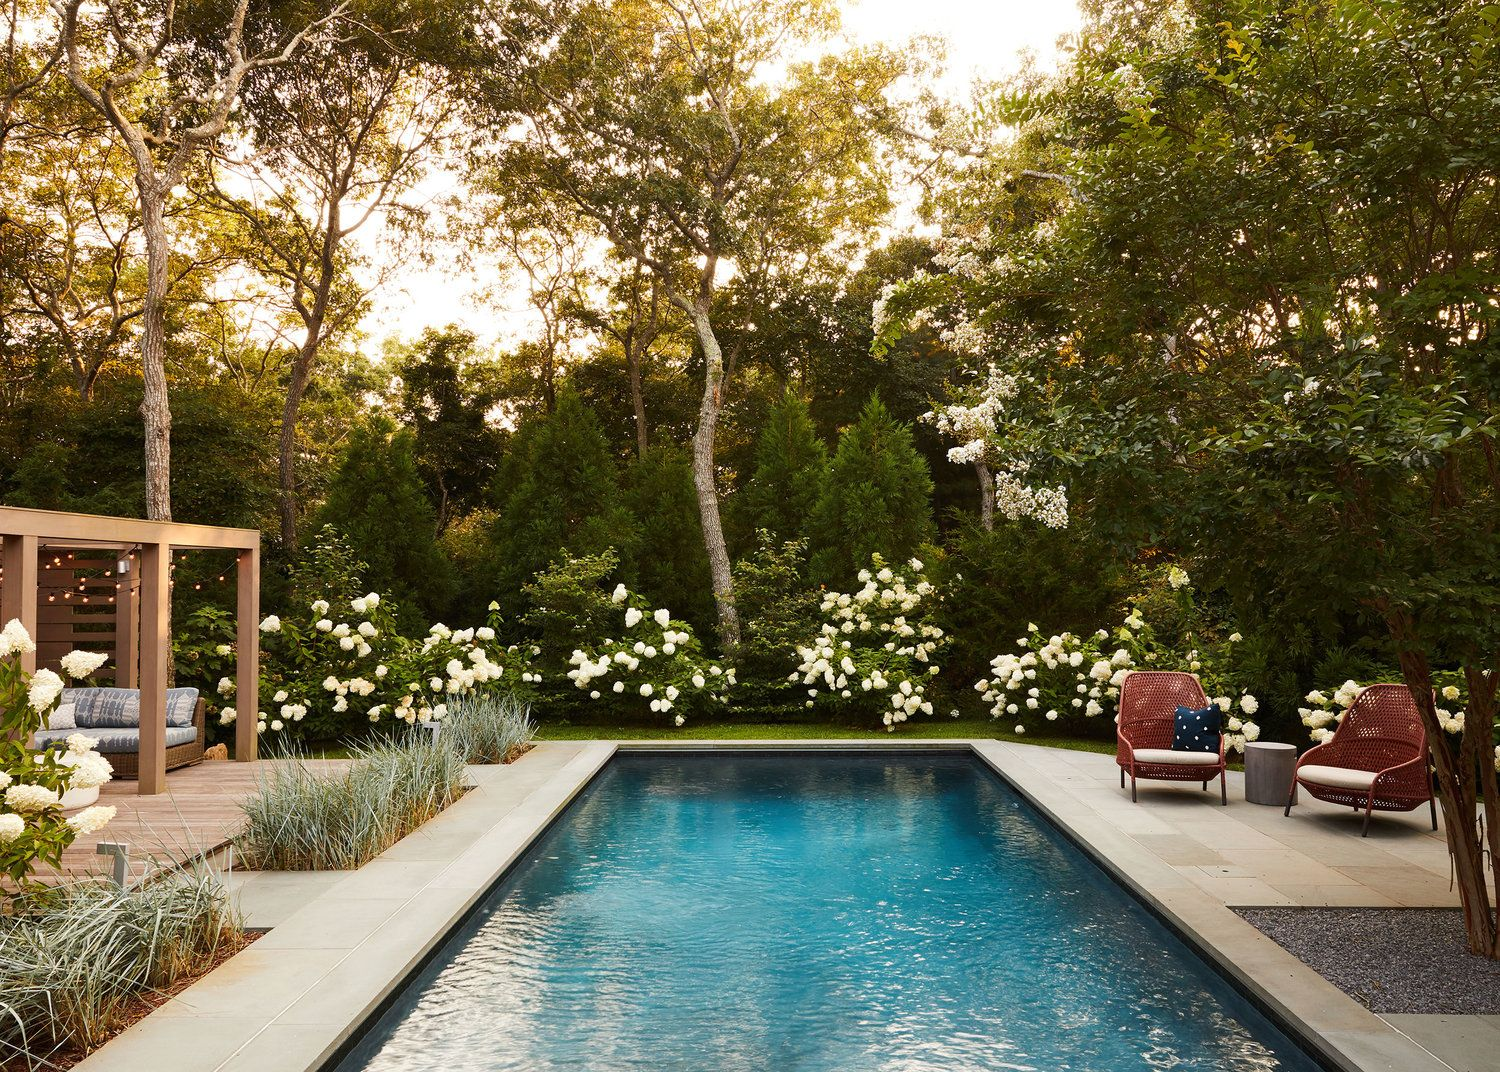 Romantic Pool Ideas 37 Breathtaking Backyard Ideas Outdoor Space Design Inspiration